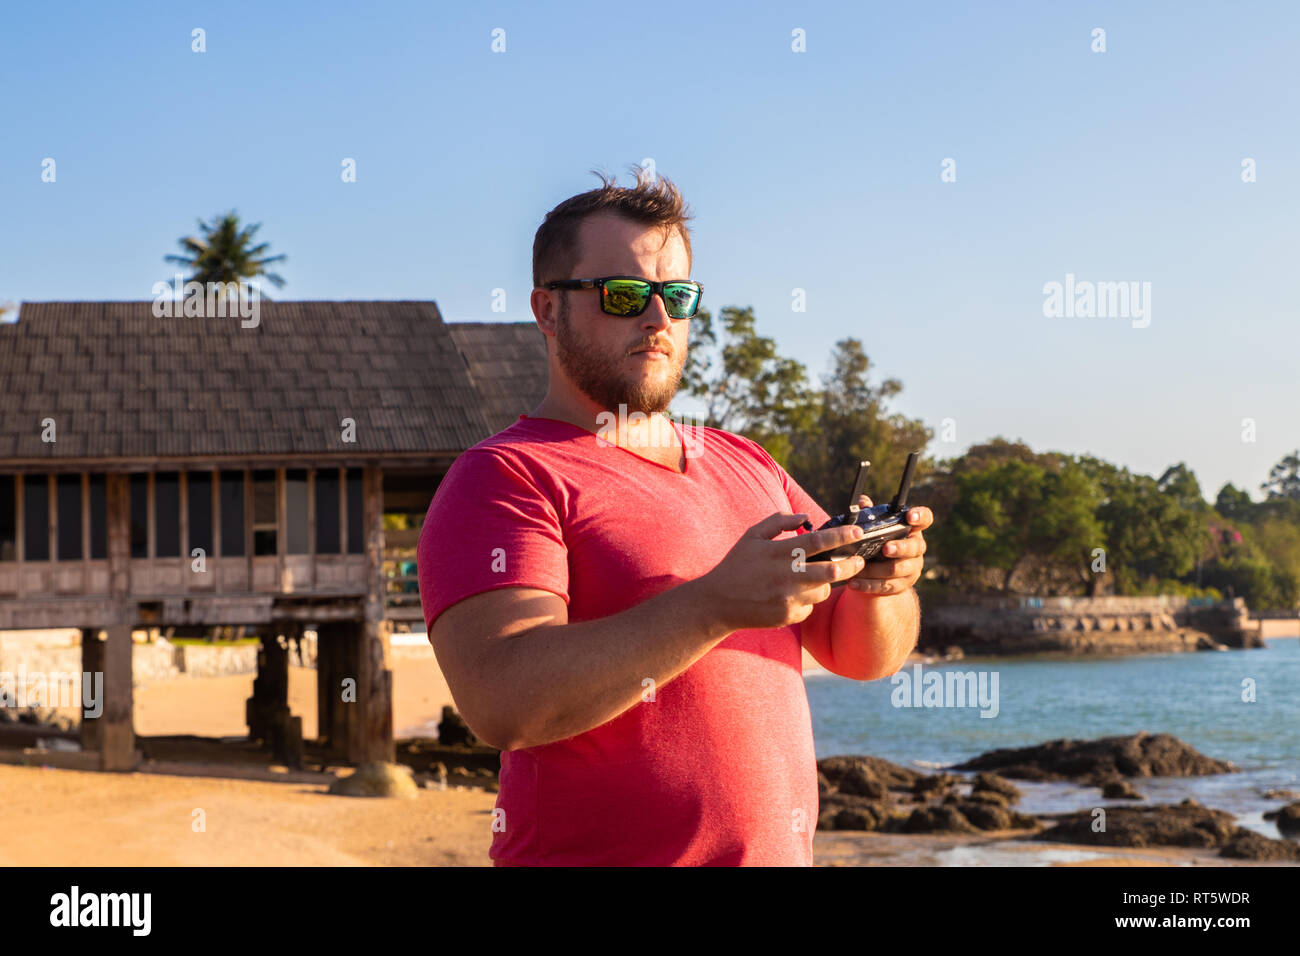 A man controls a drone at sunset - Stock Image